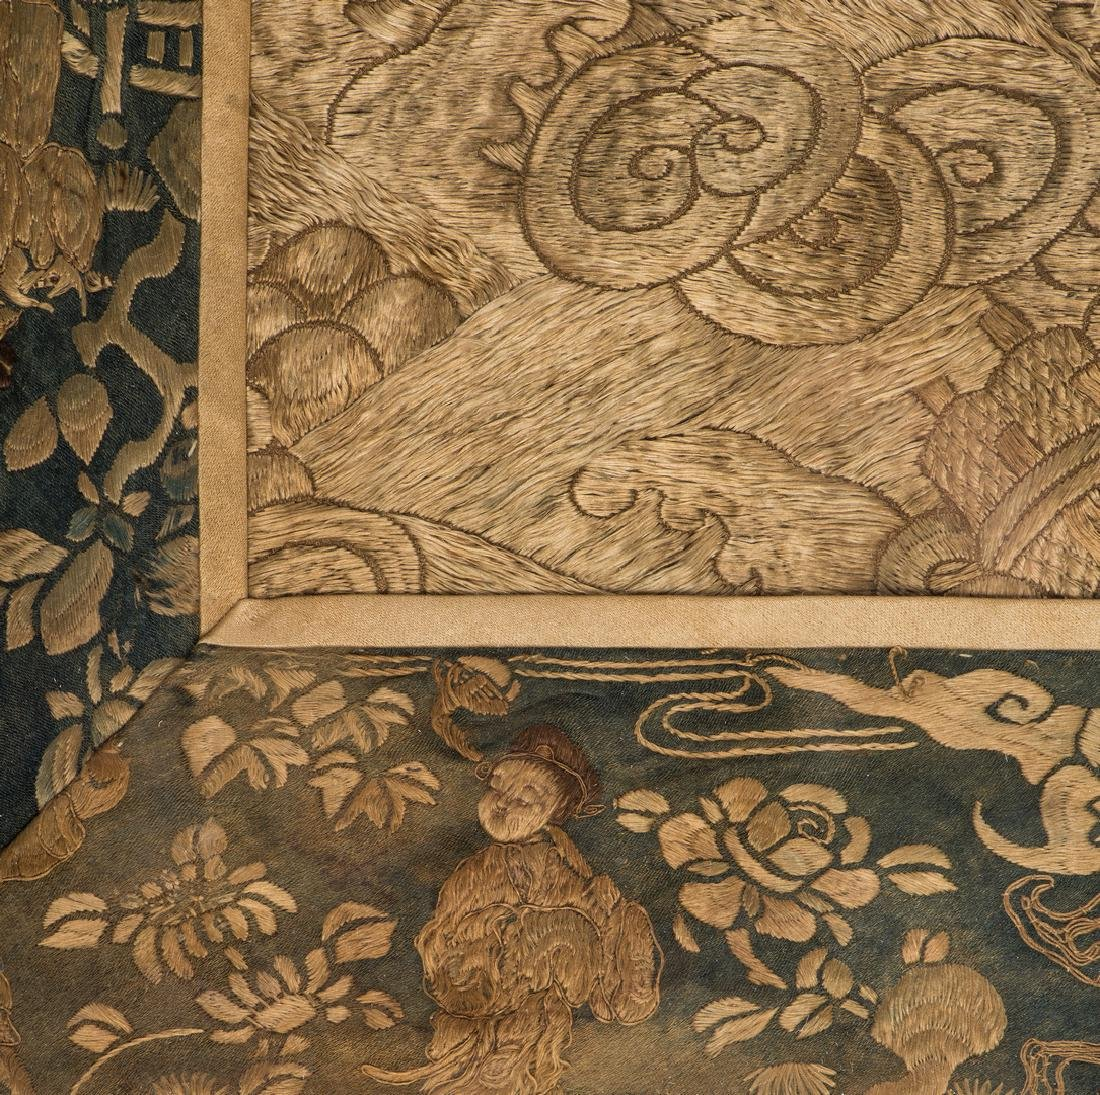 Chinese Qing Silk Embroidery - 9